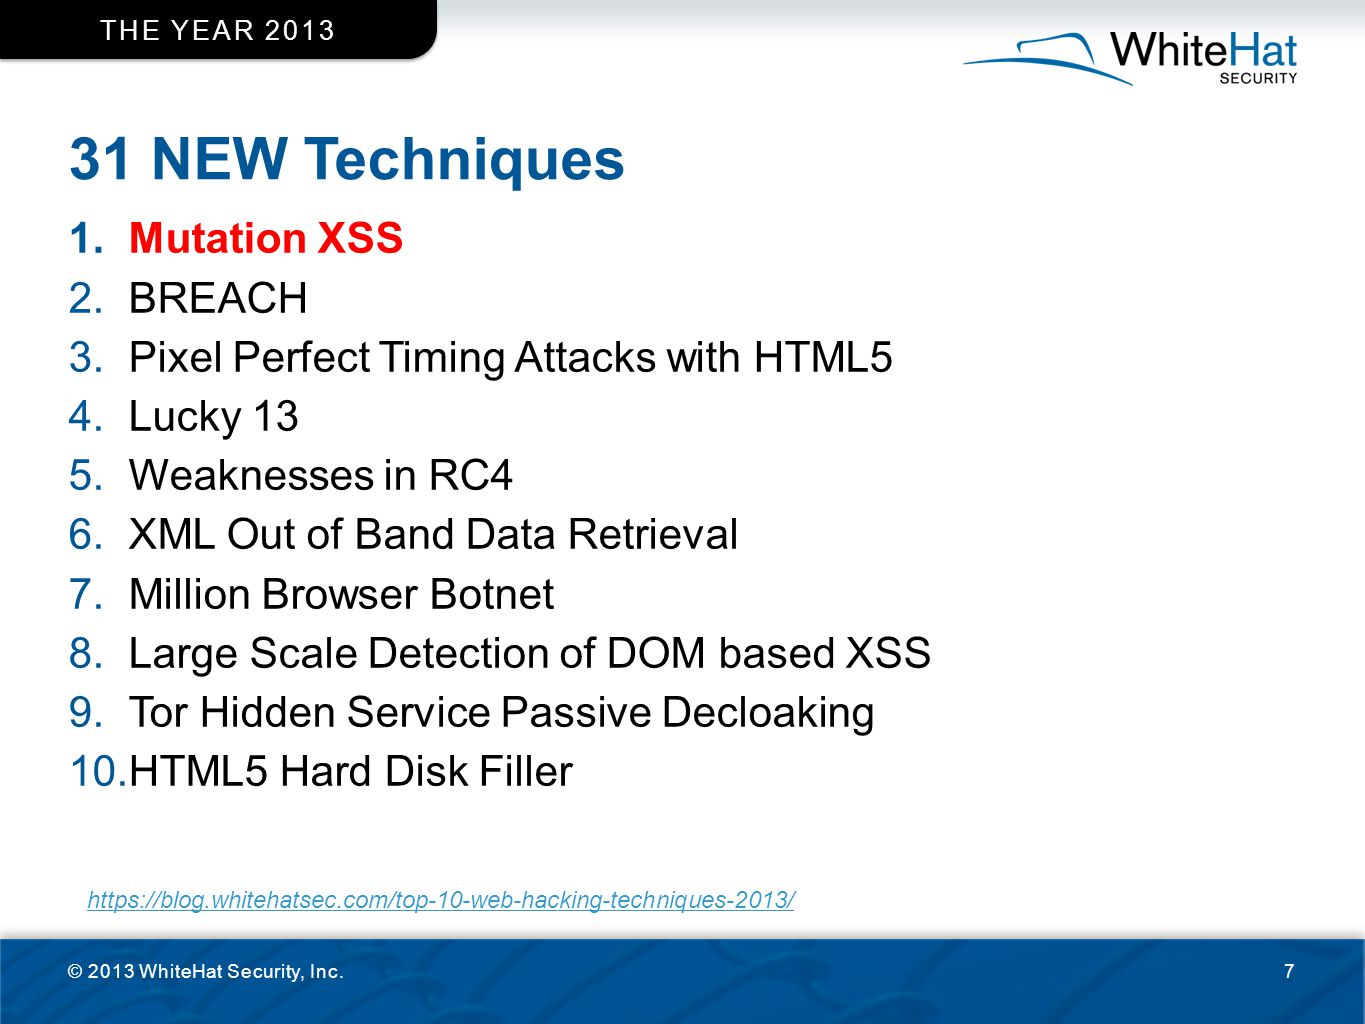 BREACH © 2013 WhiteHat Security, Inc.48 2013 TOP TEN 2 In this hands-on talk, we will introduce new targeted techniques and research that allows an attacker to reliably retrieve encrypted secrets (session identifiers, CSRF tokens, OAuth tokens, email addresses, ViewState hidden fields, etc.) from an HTTPS channel.